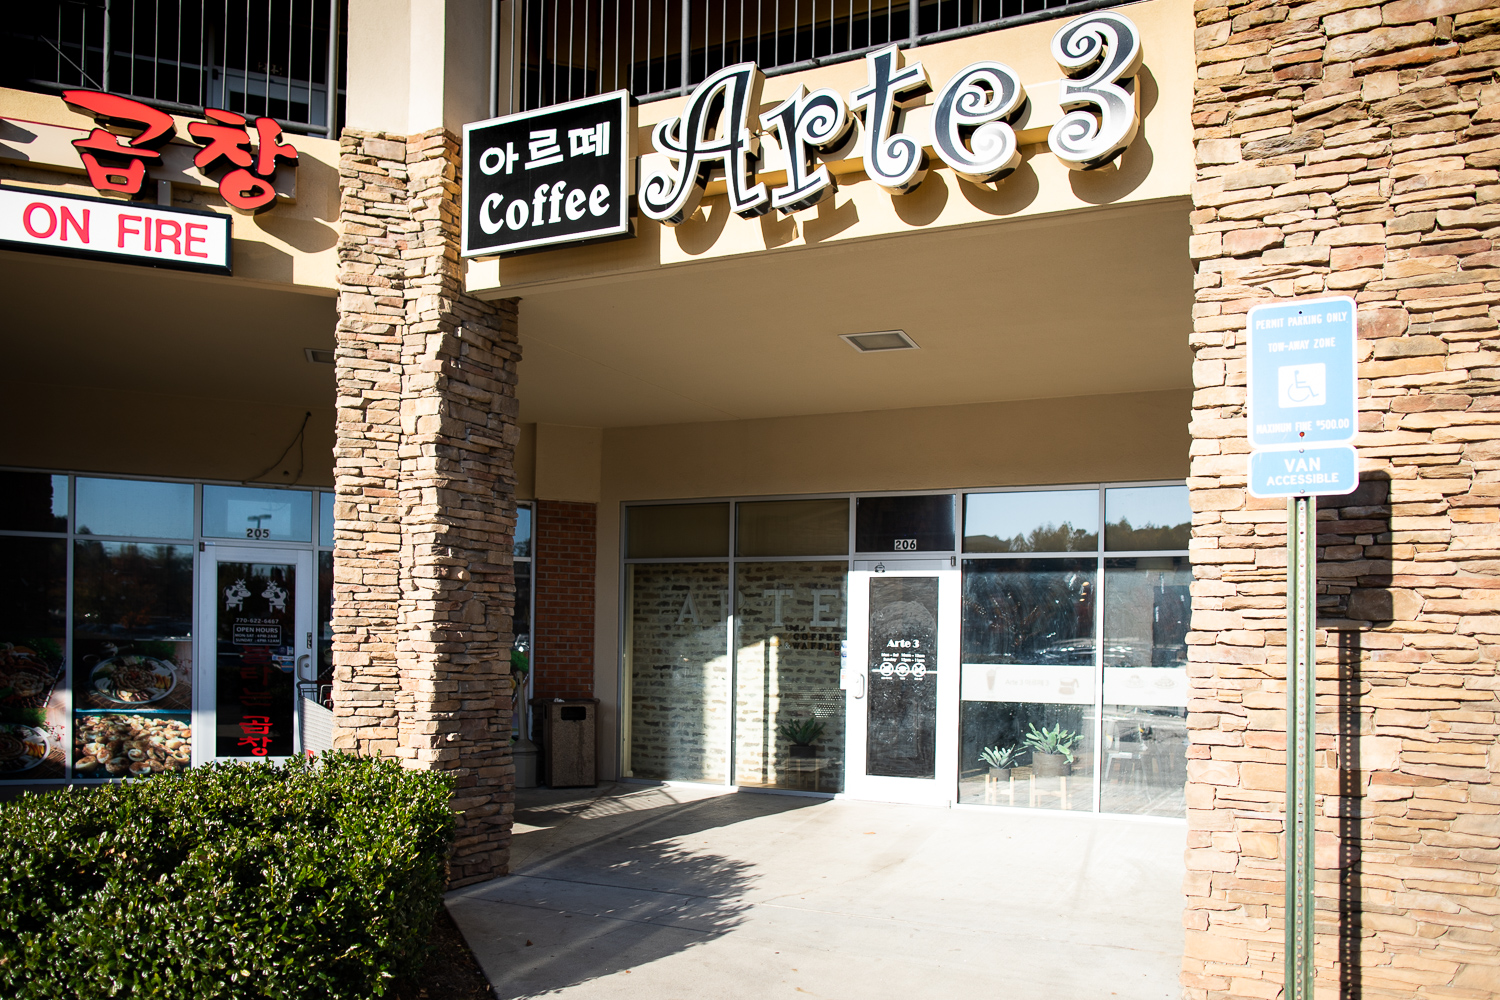 Exterior of Arte 3 Cafe in Suwanee, GA.